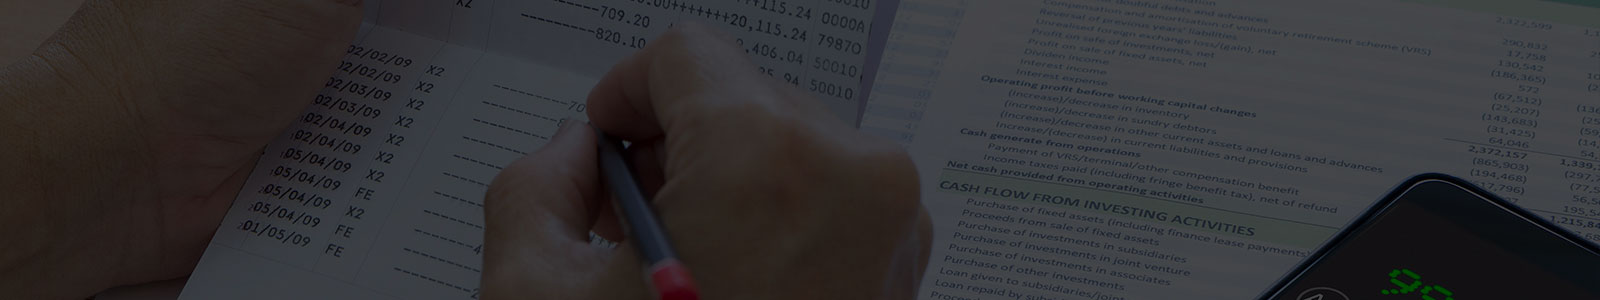 Outsourcing Accounts Reconcilation Services